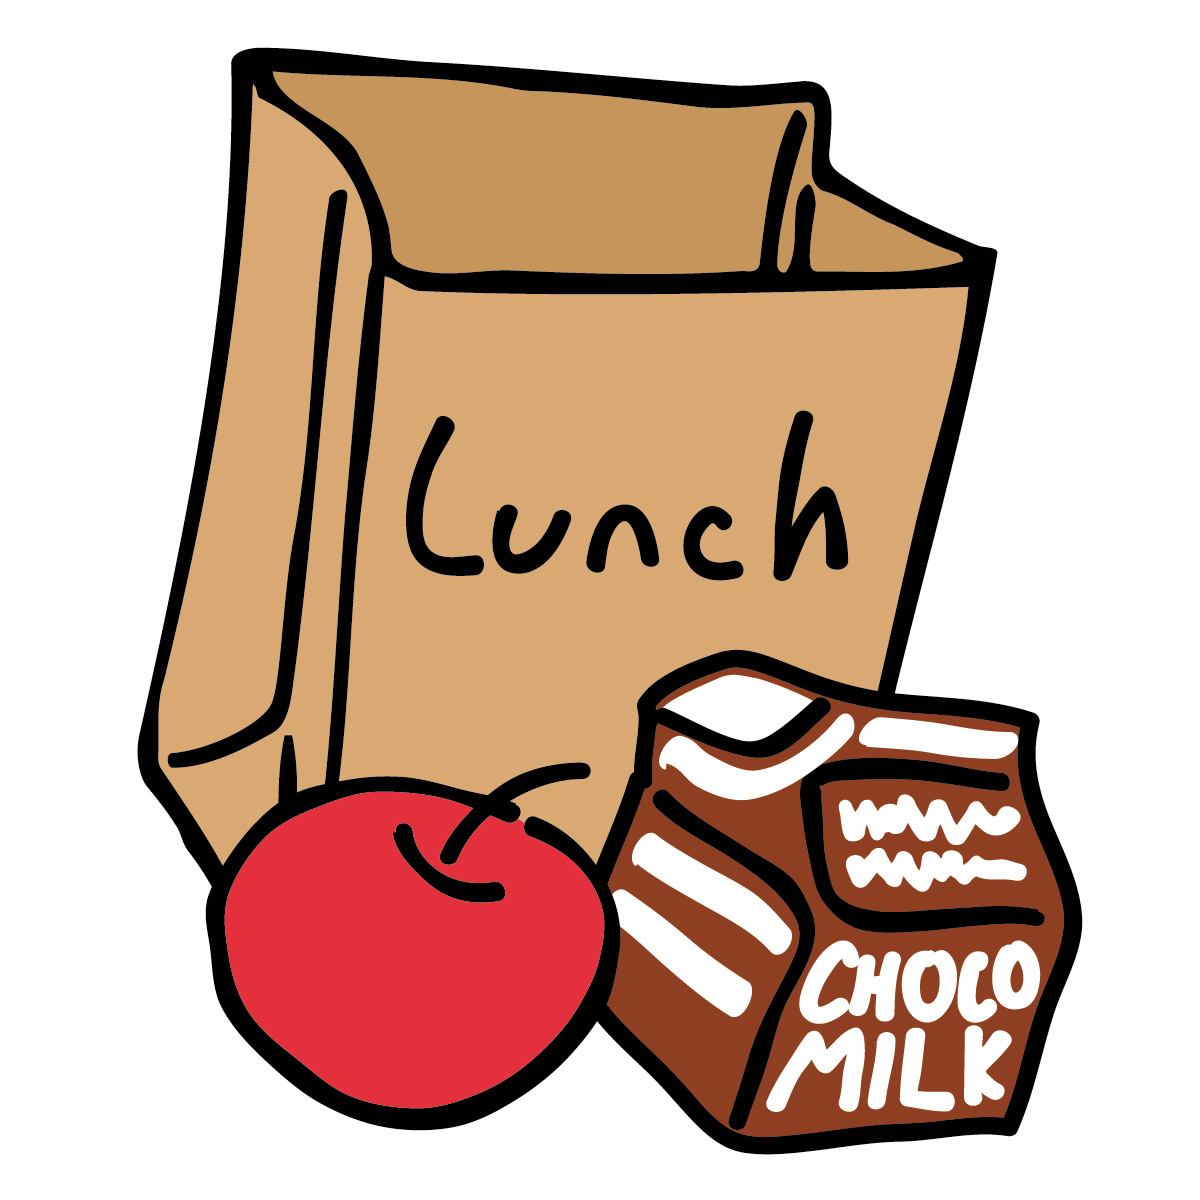 lunch time clip art clipart panda free clipart images rh clipartpanda com lunch clip art pictures lunch clipart black and white